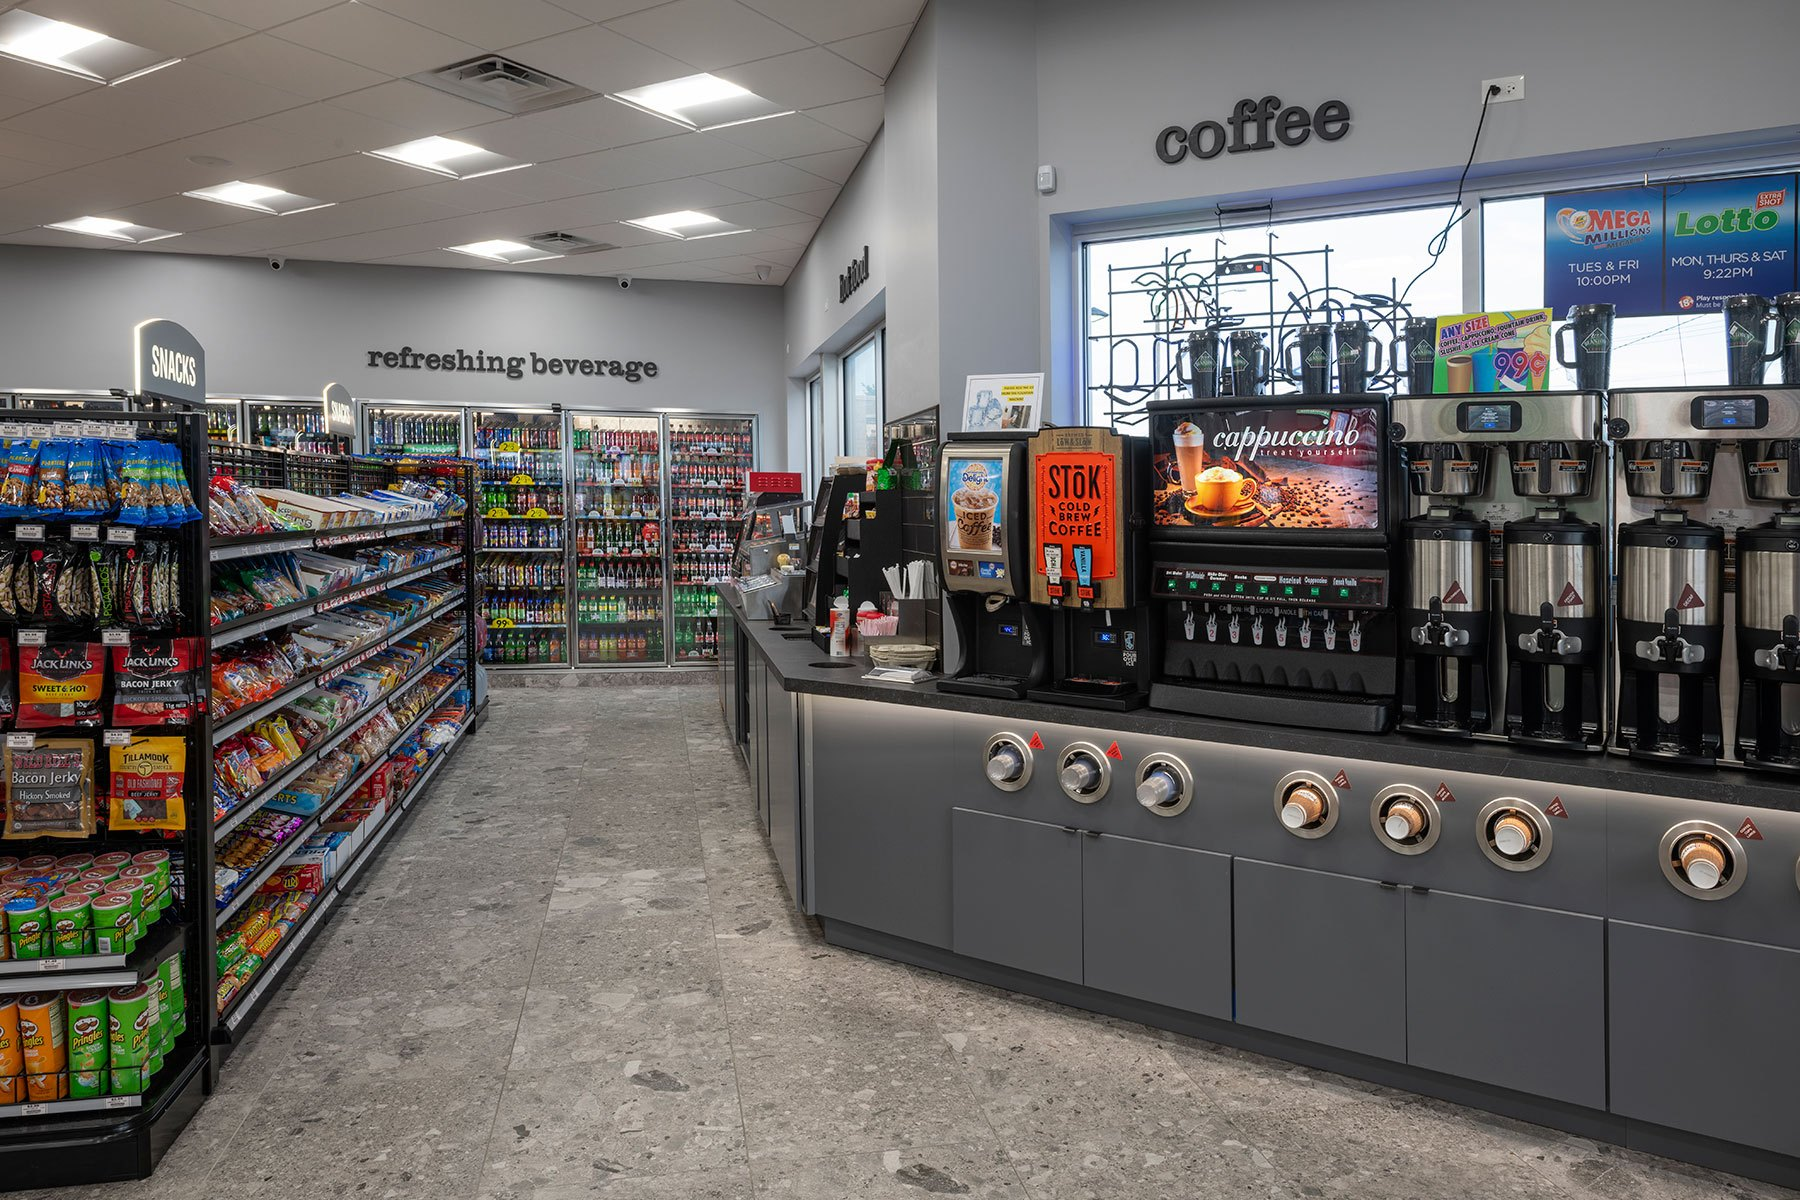 Coffee Station - BP Gas Station in Waukegan Custom Home. America's Custom Home Builders: New Construction, Remodeling, Restoration Services. Residential and Commercial.